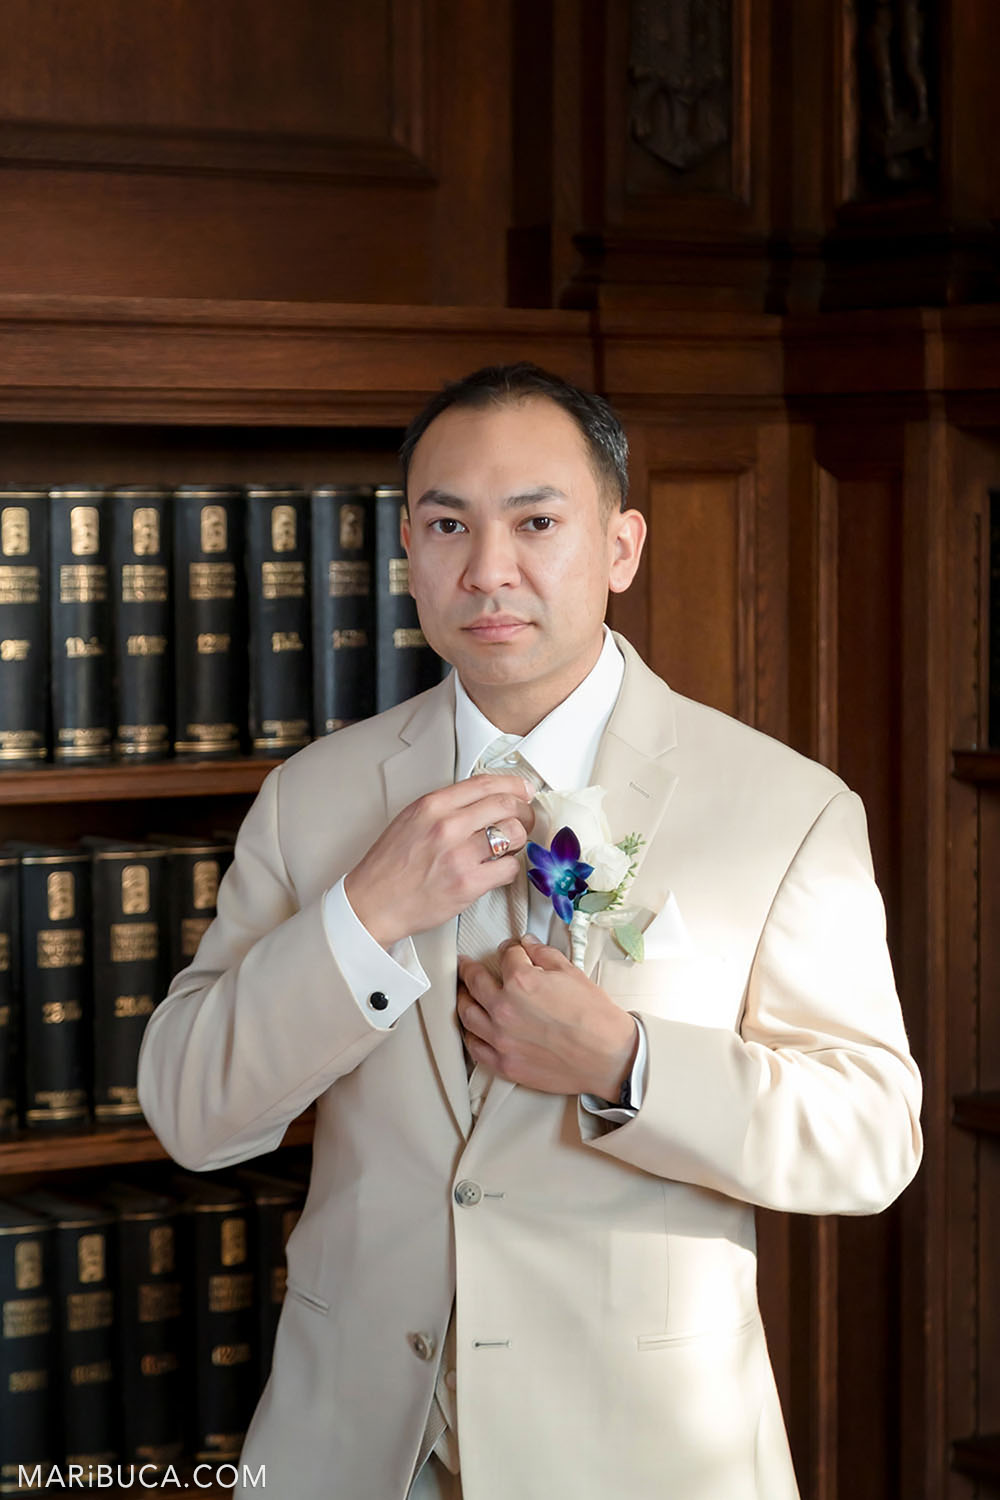 The groom holds his tie and wears light beige wedding suit during getting ready in the Library, Kohl Mansion, Burlingame